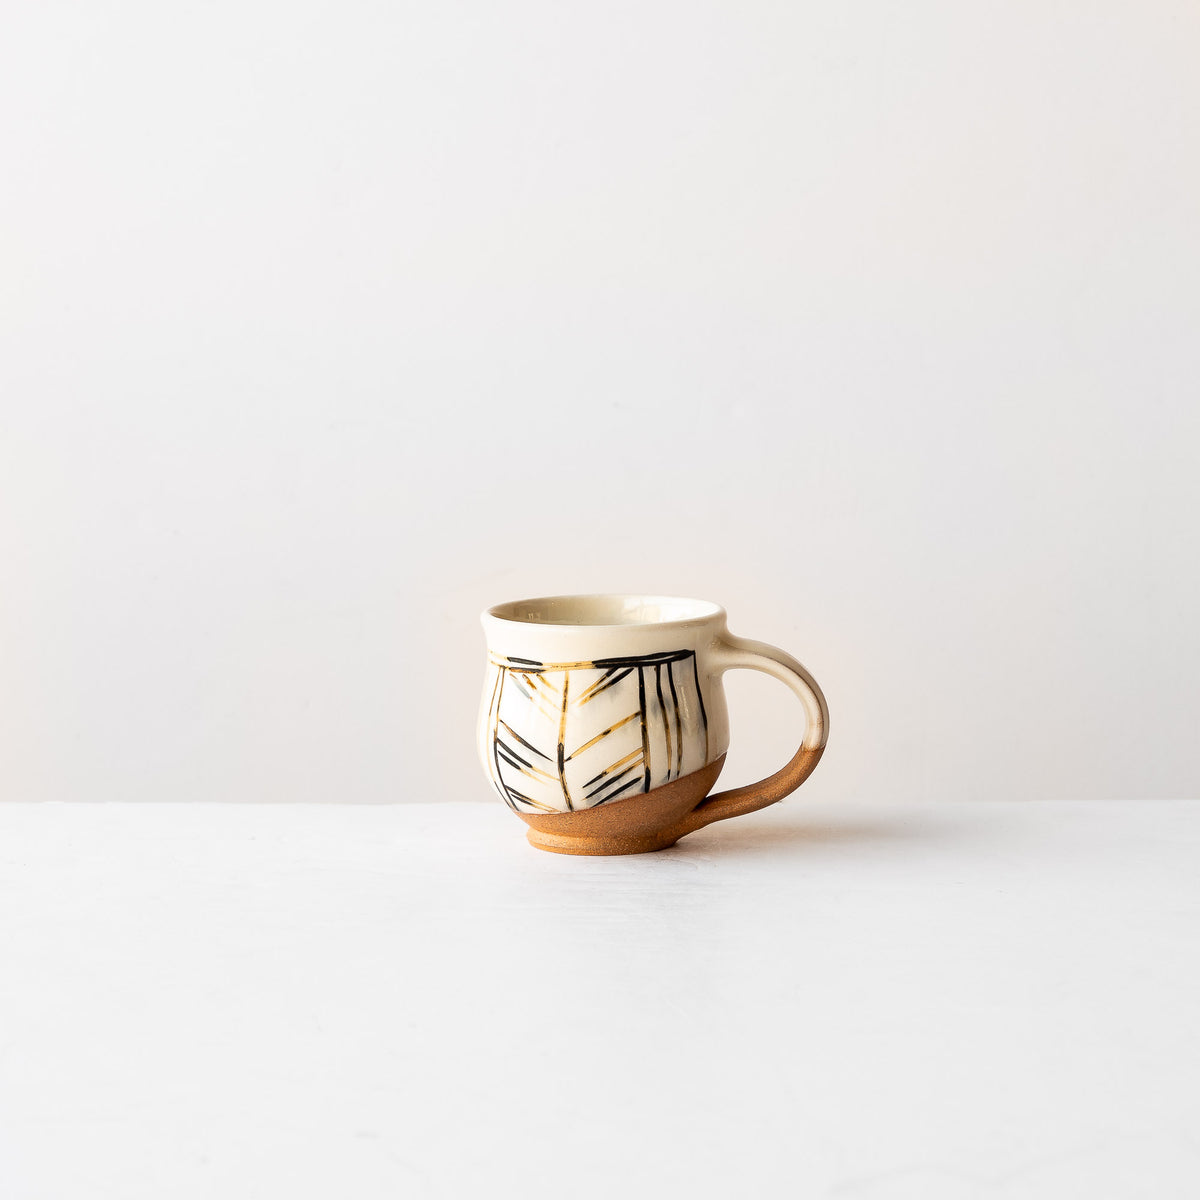 Handmade Mishima Espresso Cup With Black & Gold Lines Pattern - Sold by Chic & Basta